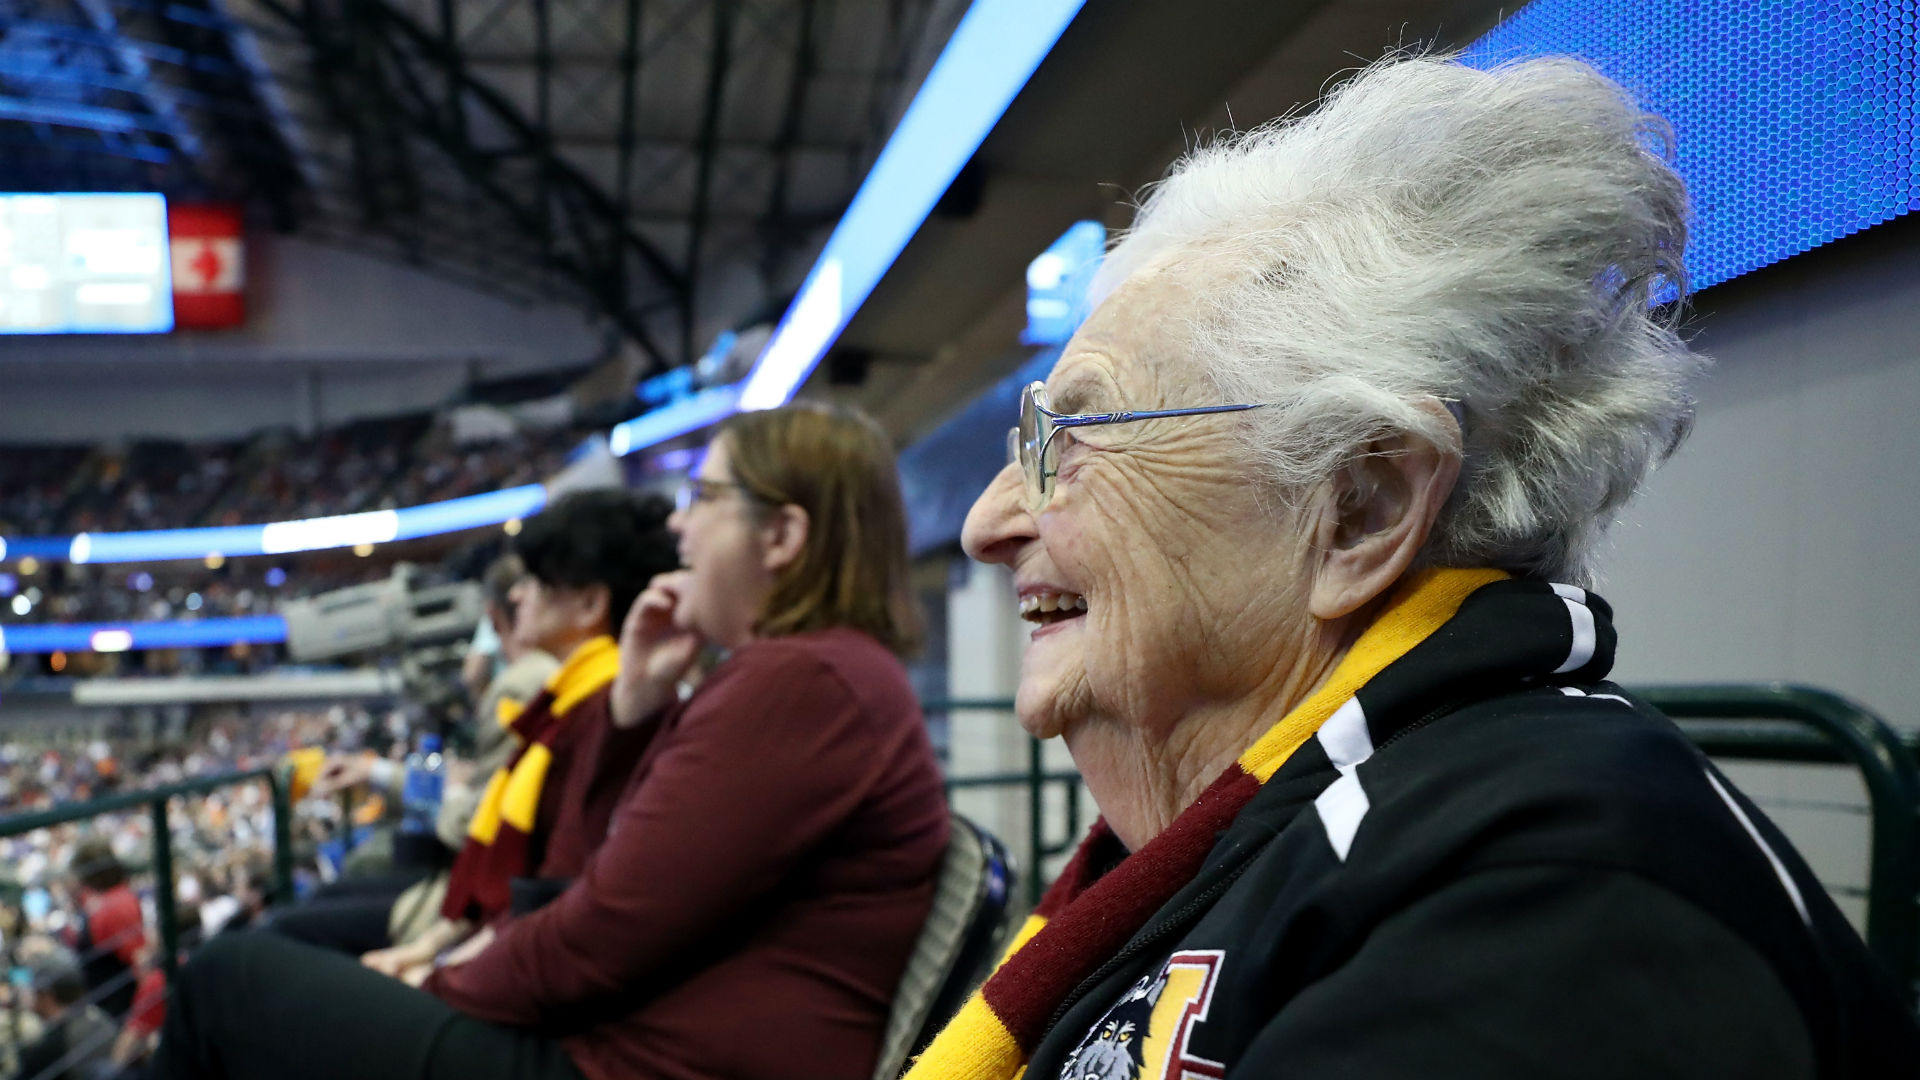 Why did Sister Jean leave Final Four early?